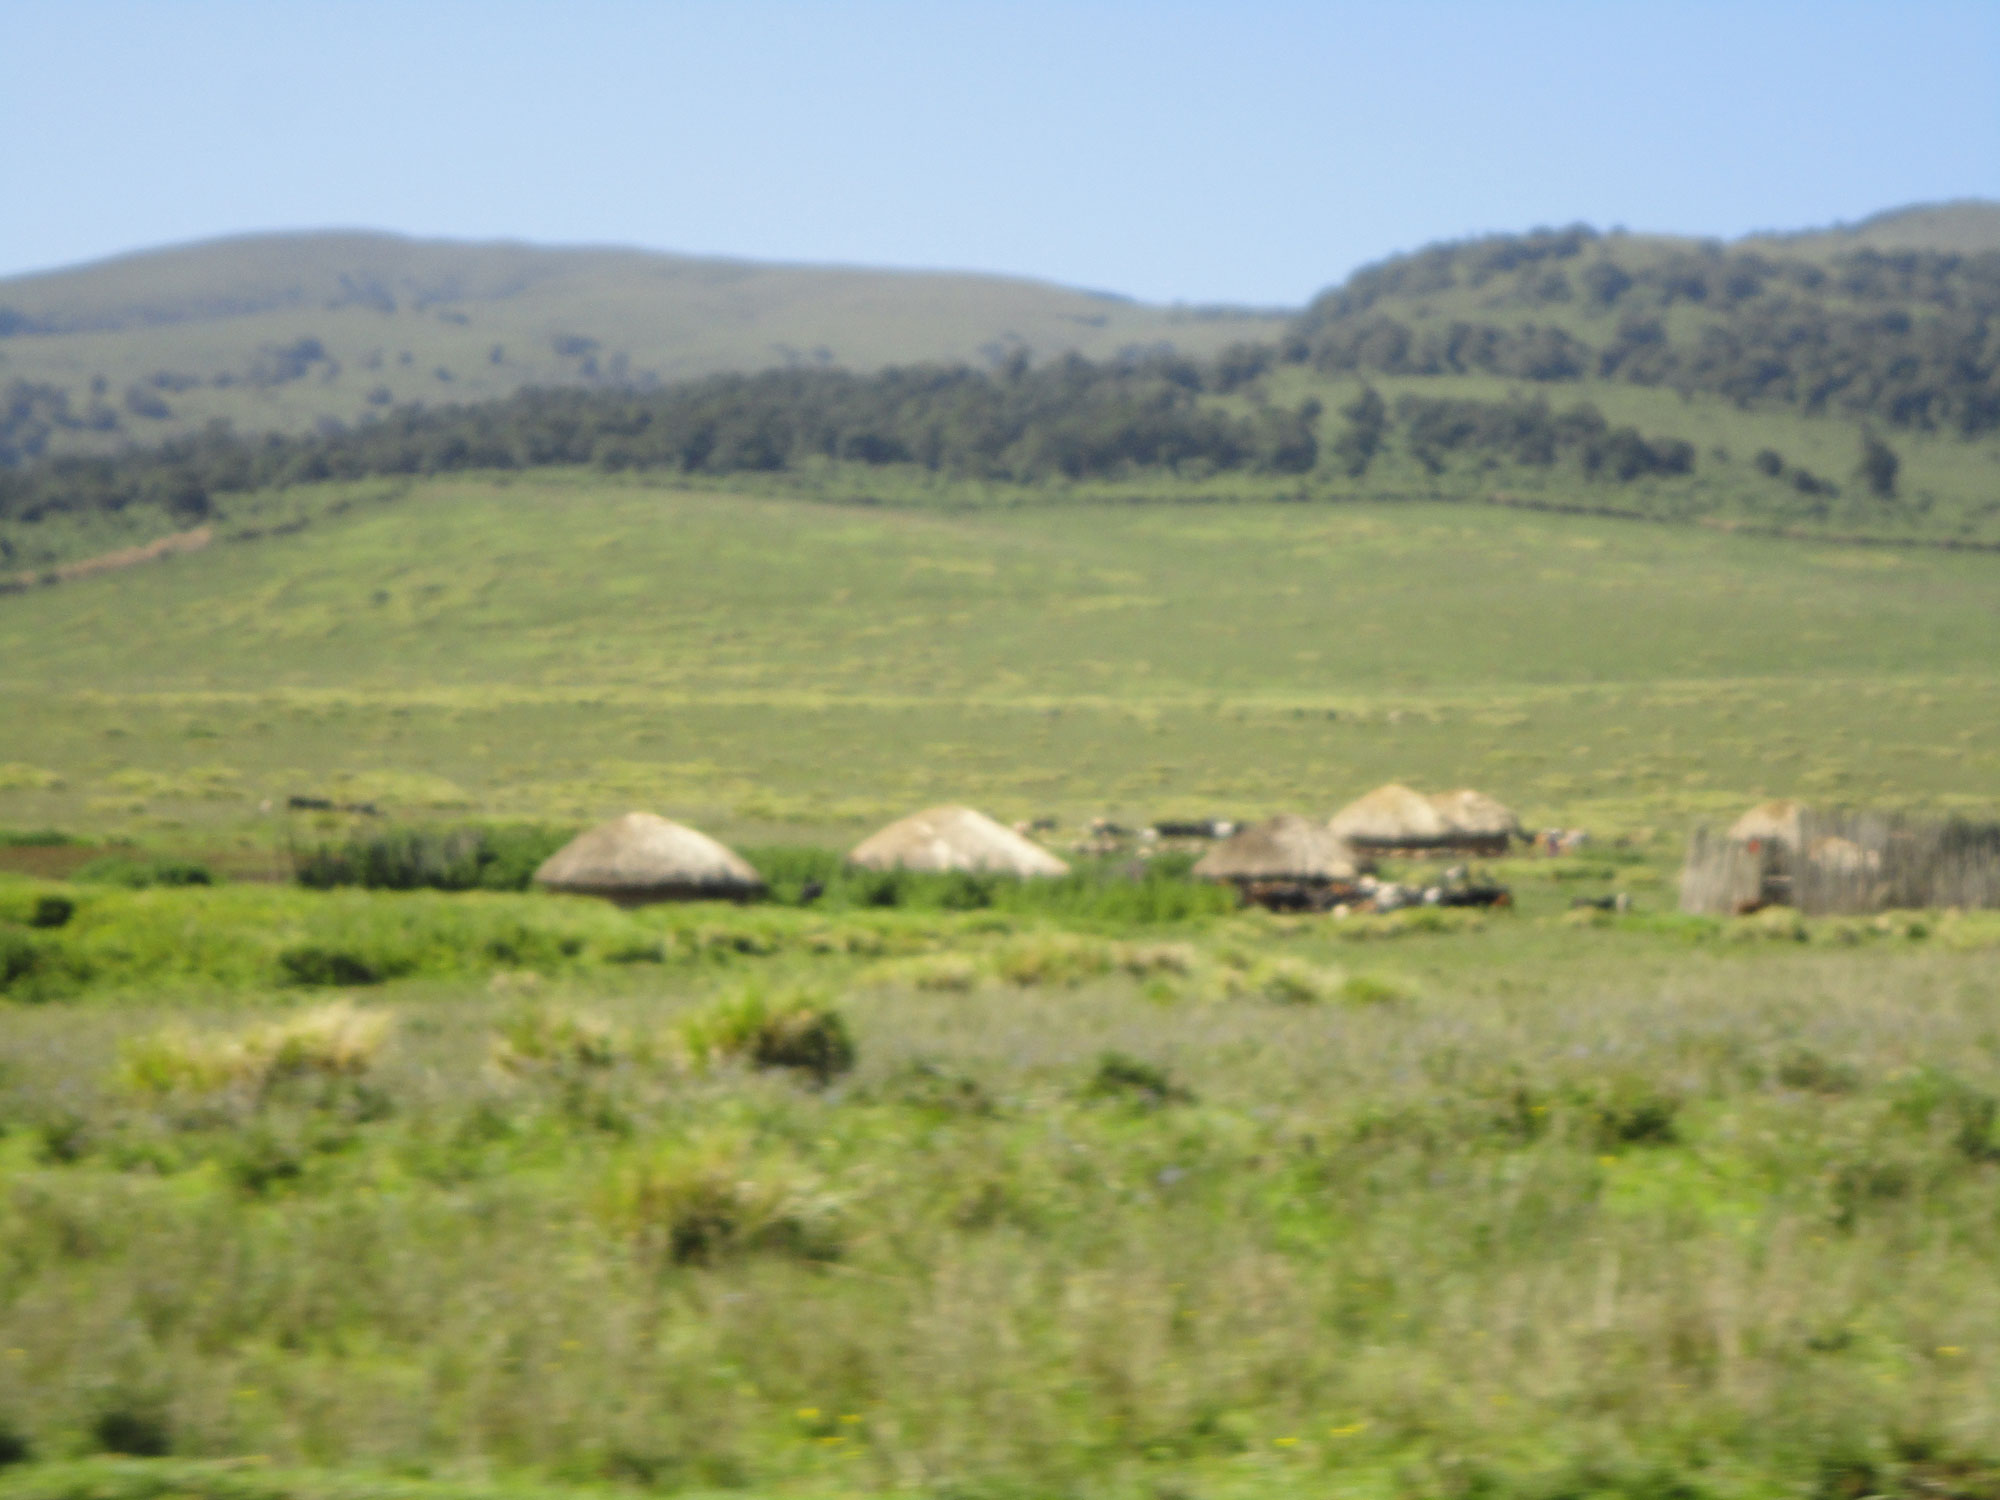 Travel Medicine - Typical Massai Village